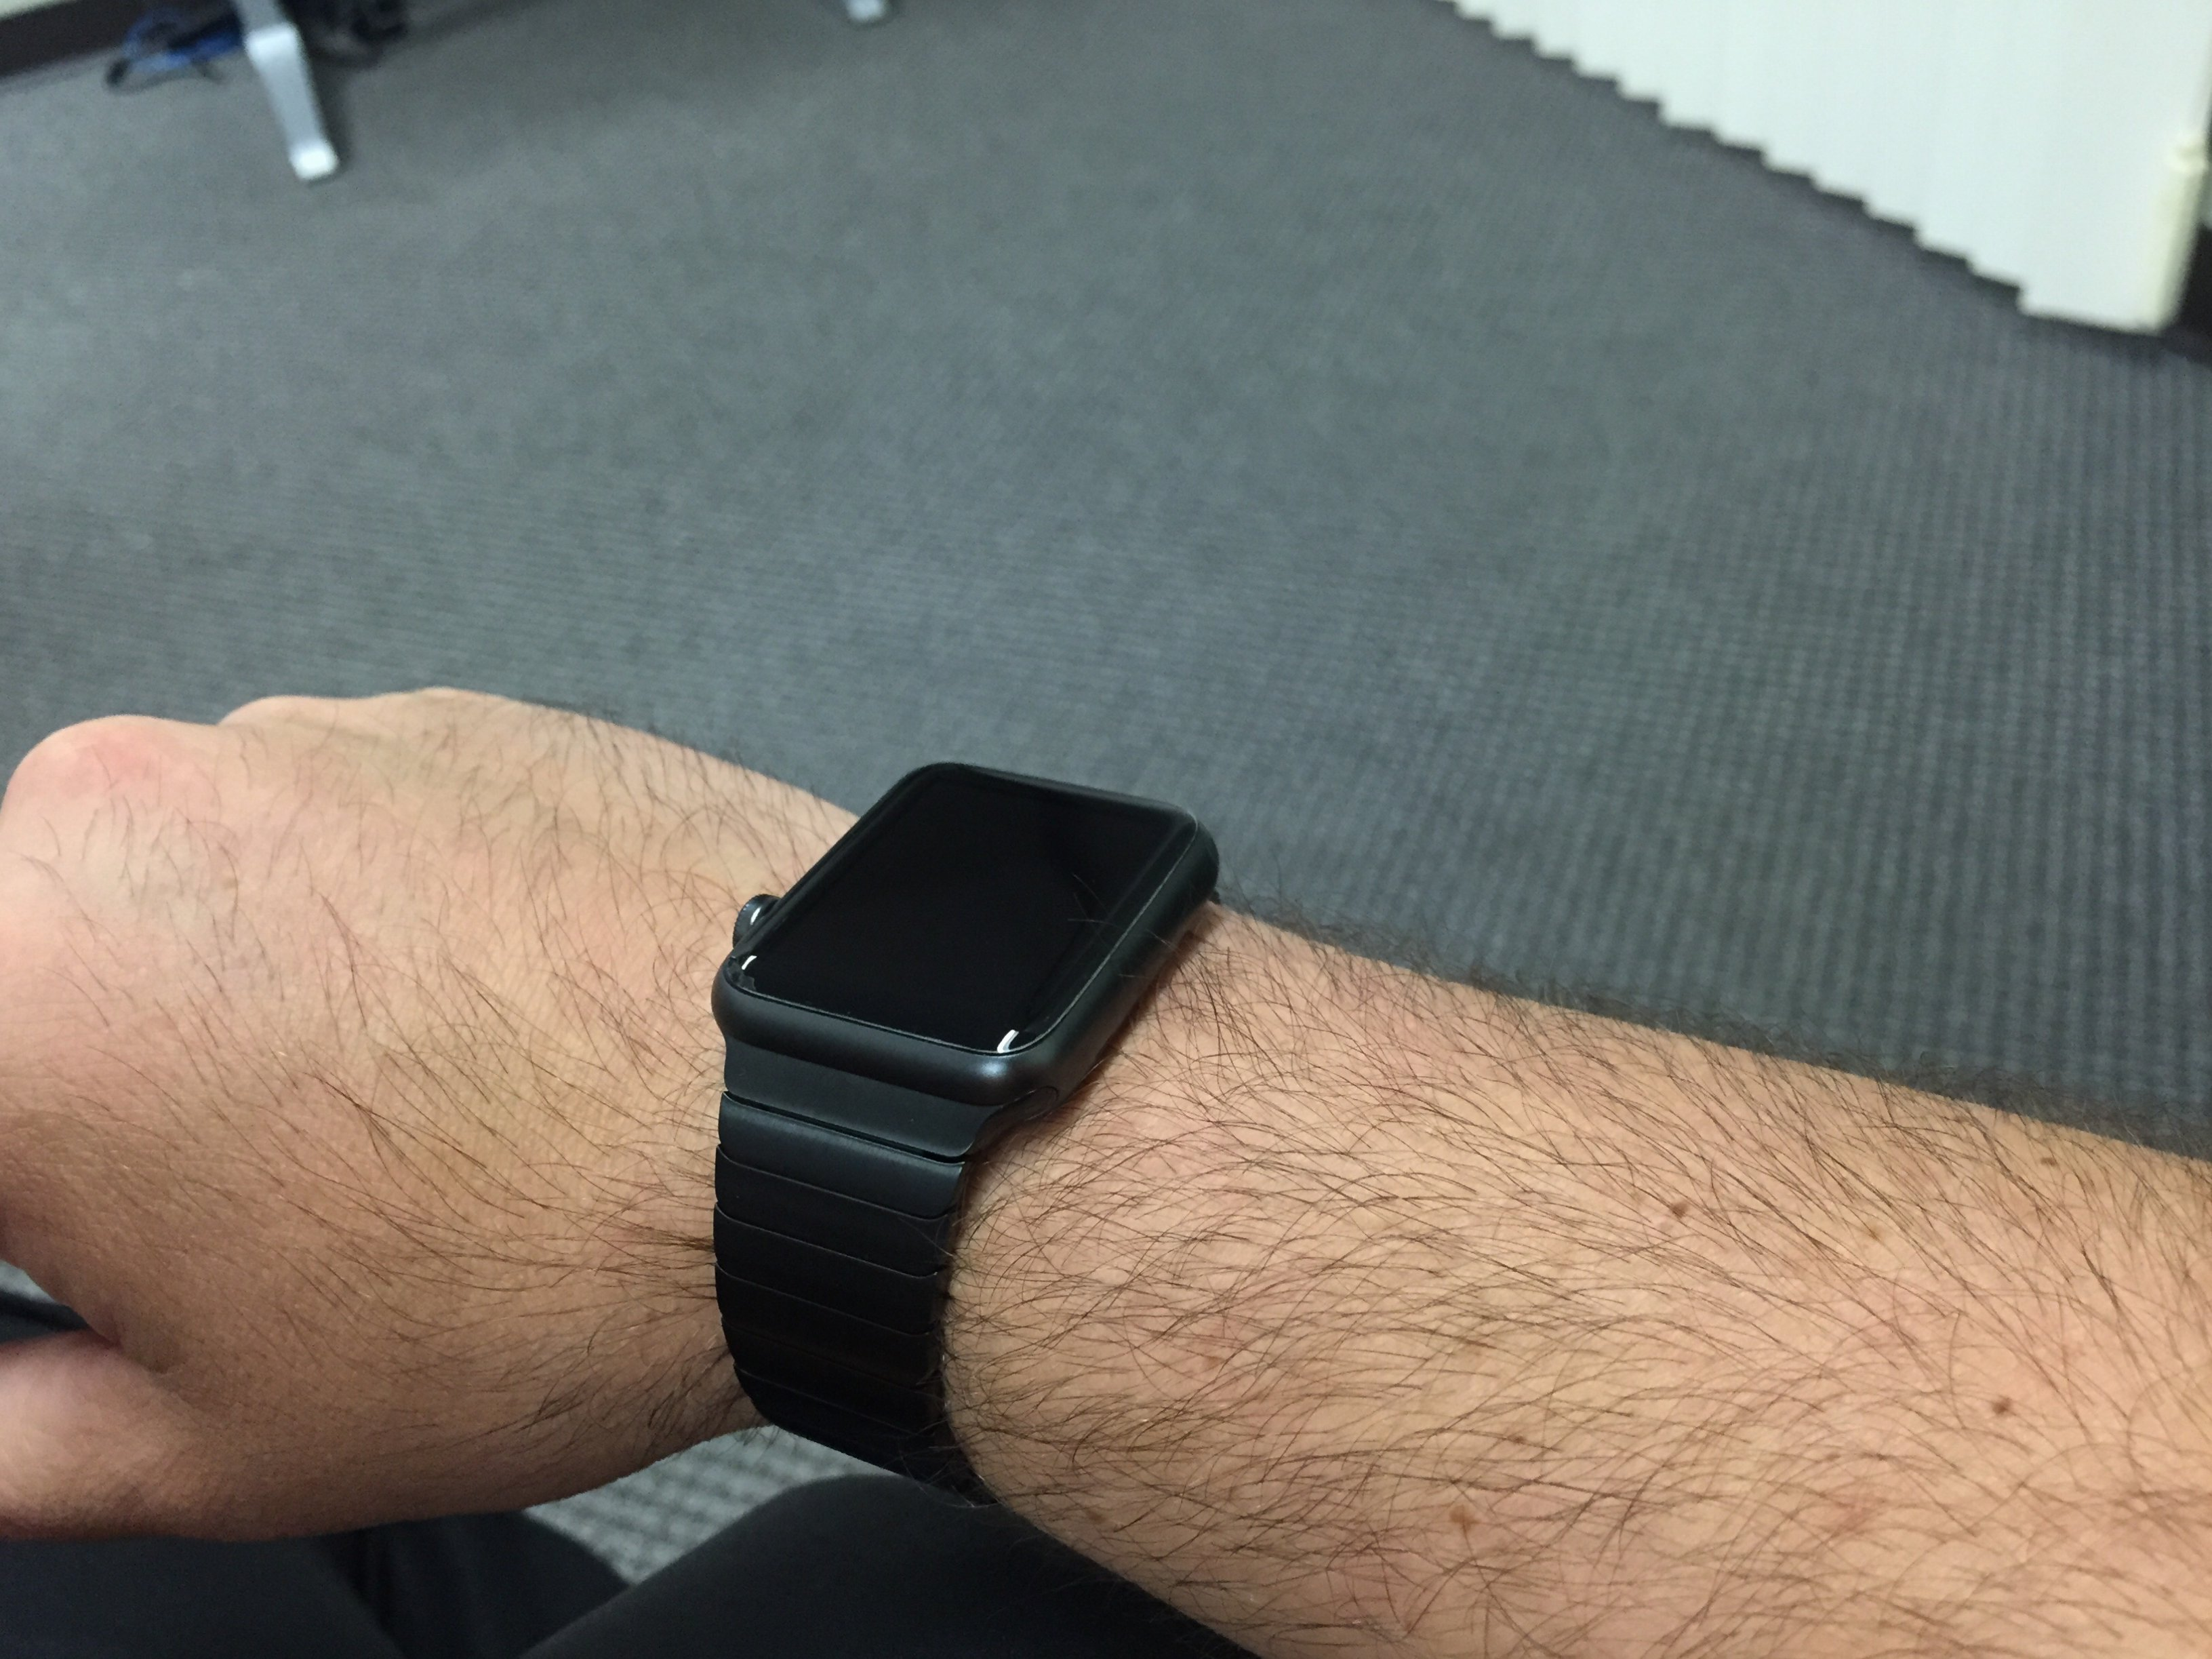 Watch marks on wrist - View Attachment 578614